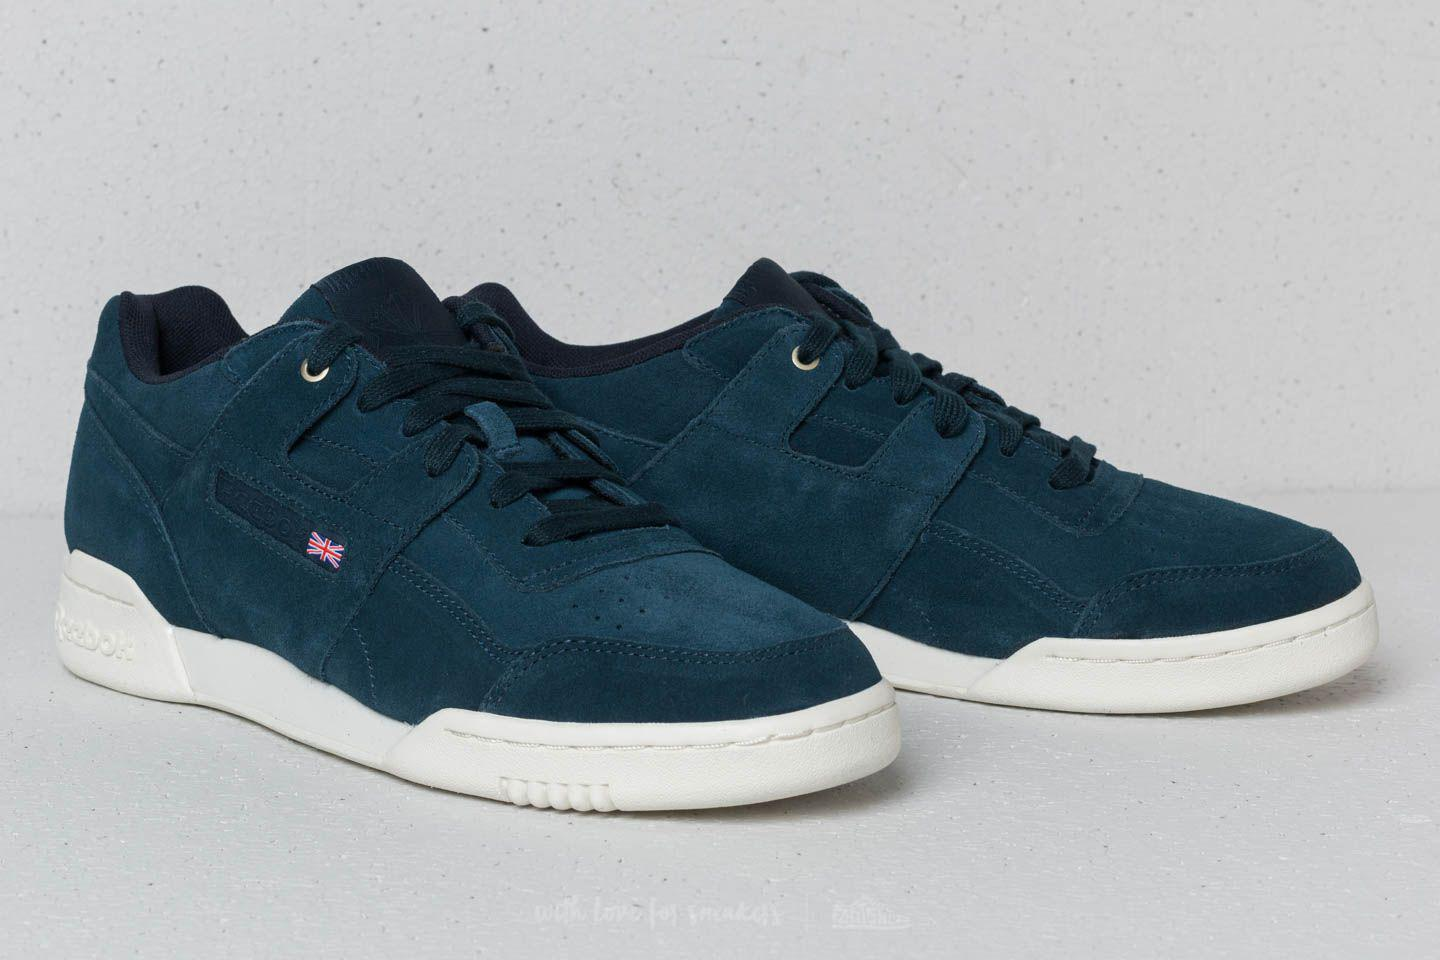 ... Reebok X Montana Cans Workout Plus Navy  Chalk for Men - Lyst. View  fullscreen 77118114d